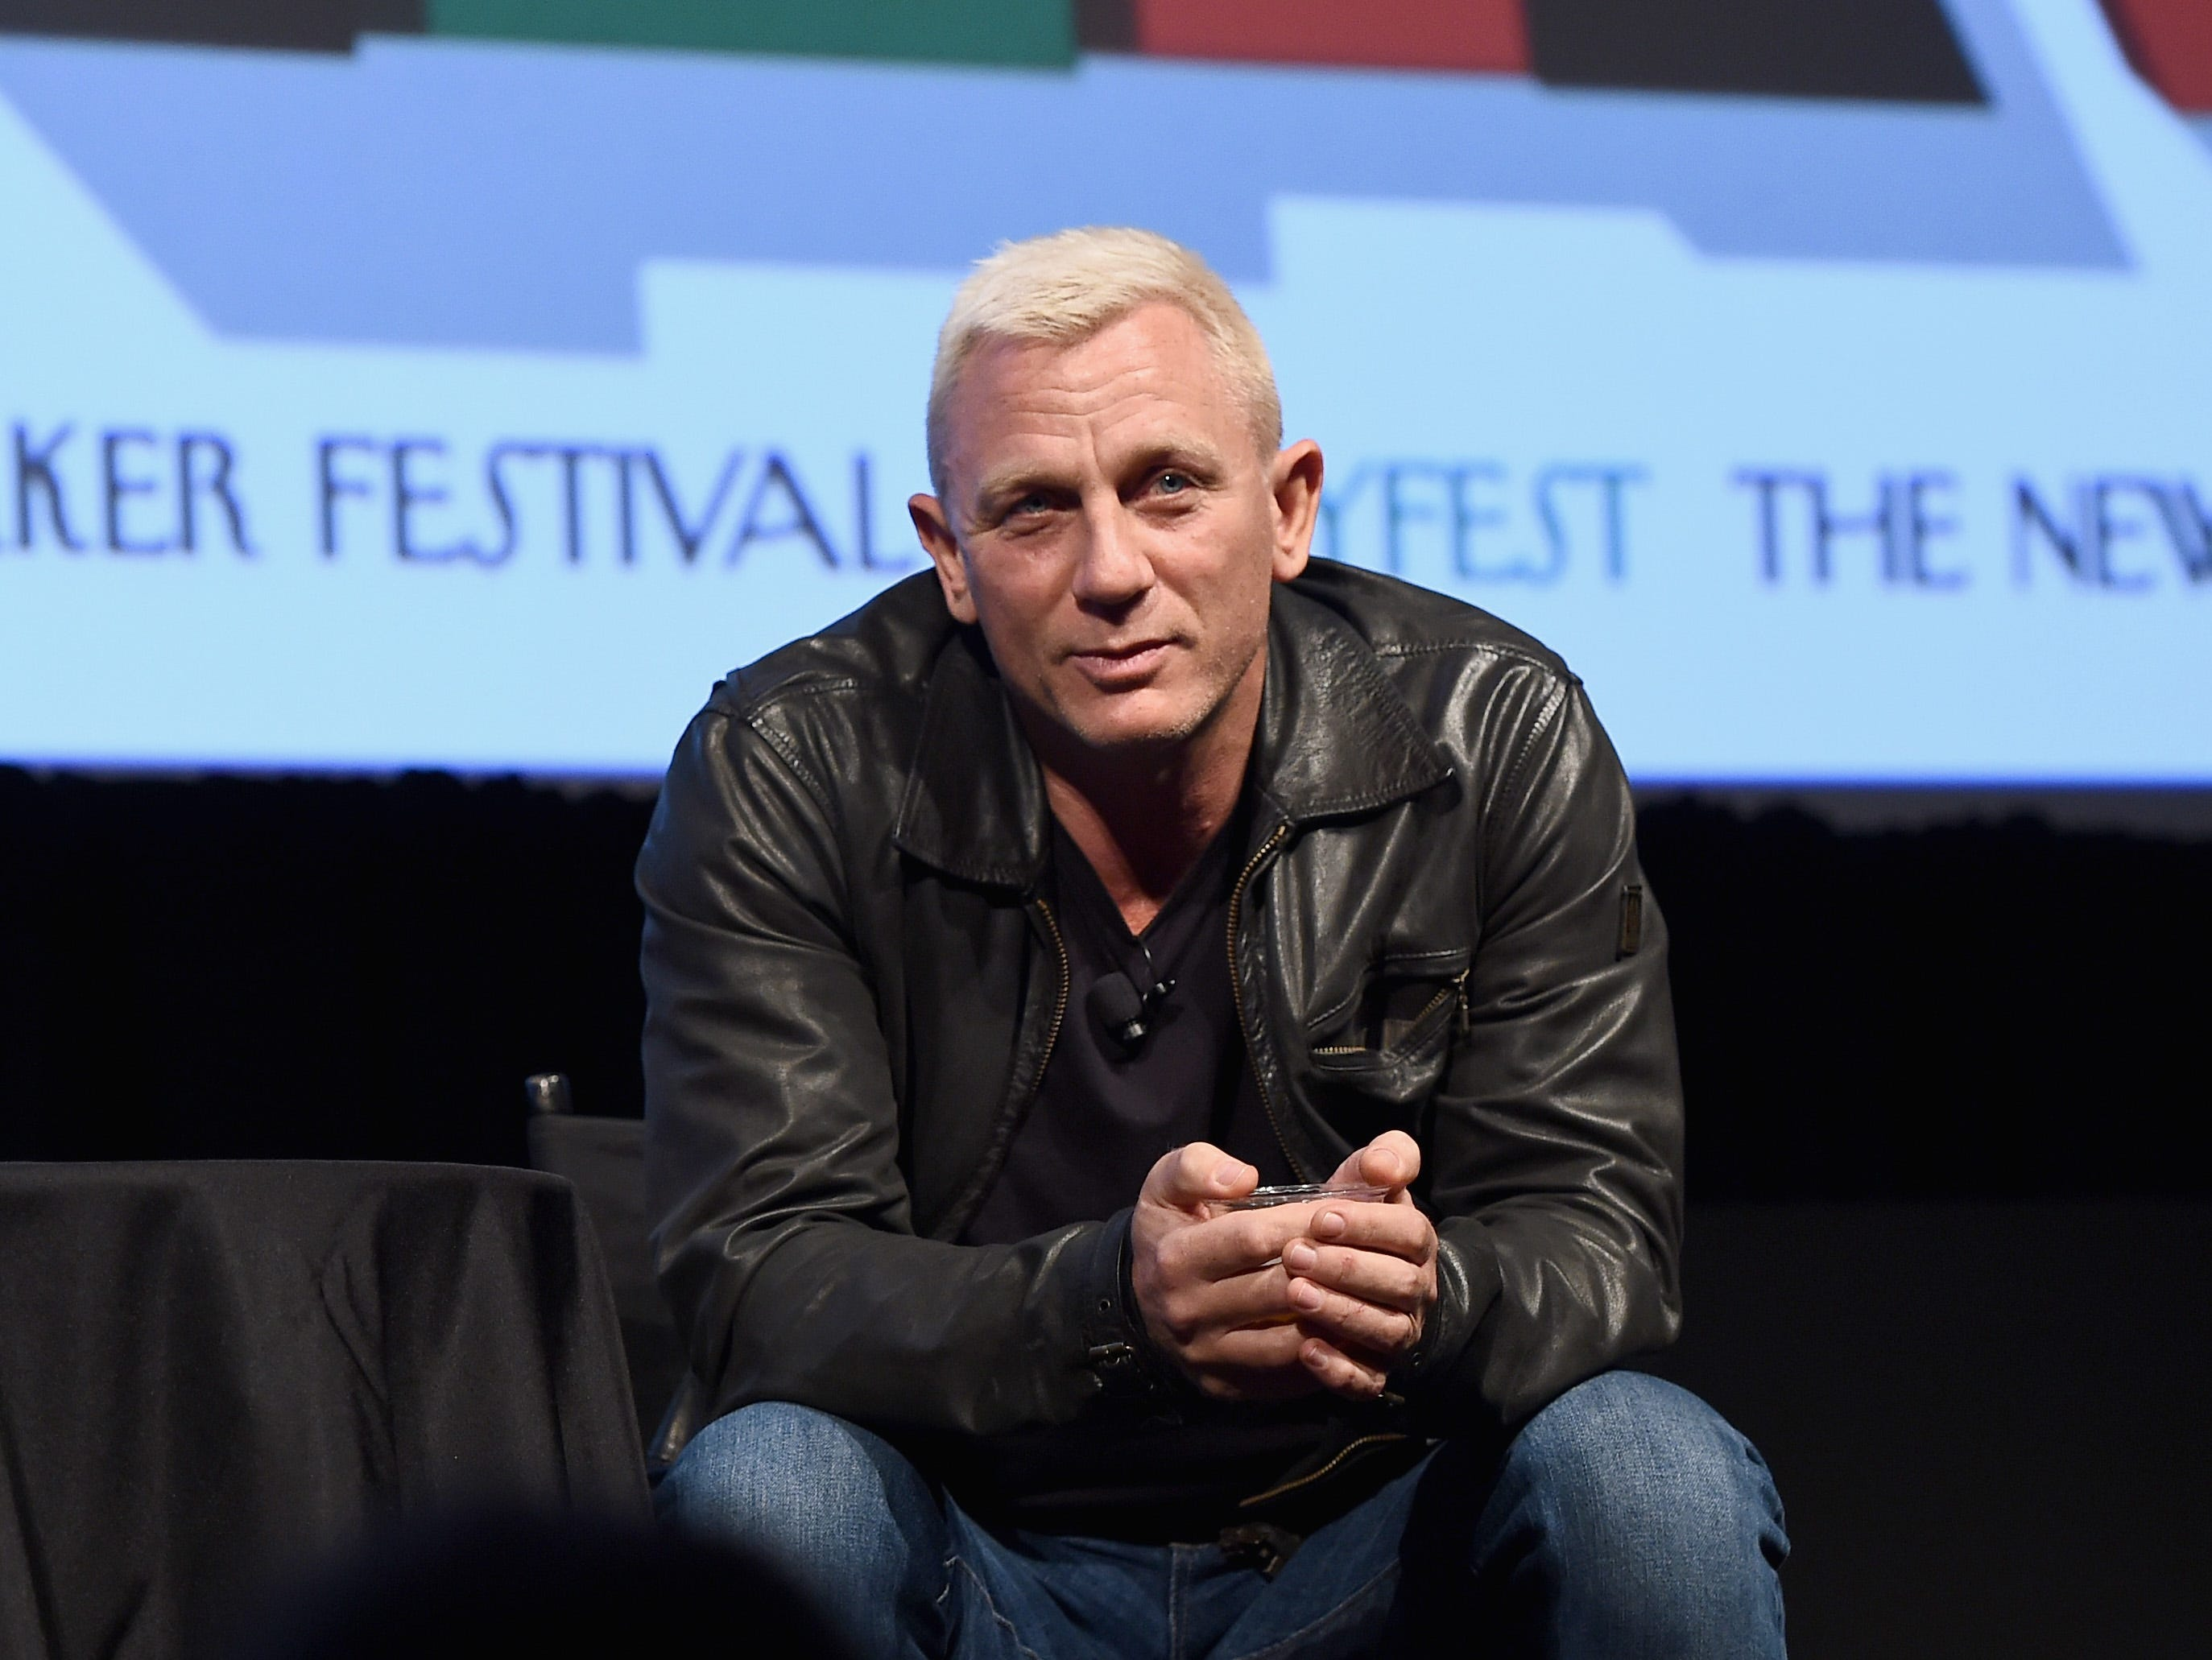 NEW YORK, NY - OCTOBER 07:  Actor Daniel Craig speaks onstage during The New Yorker Festival 2016 - Daniel Craig Talks With Nicholas Schmidle at MasterCard Stage at SVA Theatre on October 7, 2016 in New York City.  (Photo by Ilya S. Savenok/Getty Images for The New Yorker) ORG XMIT: 675028603 ORIG FILE ID: 613264744